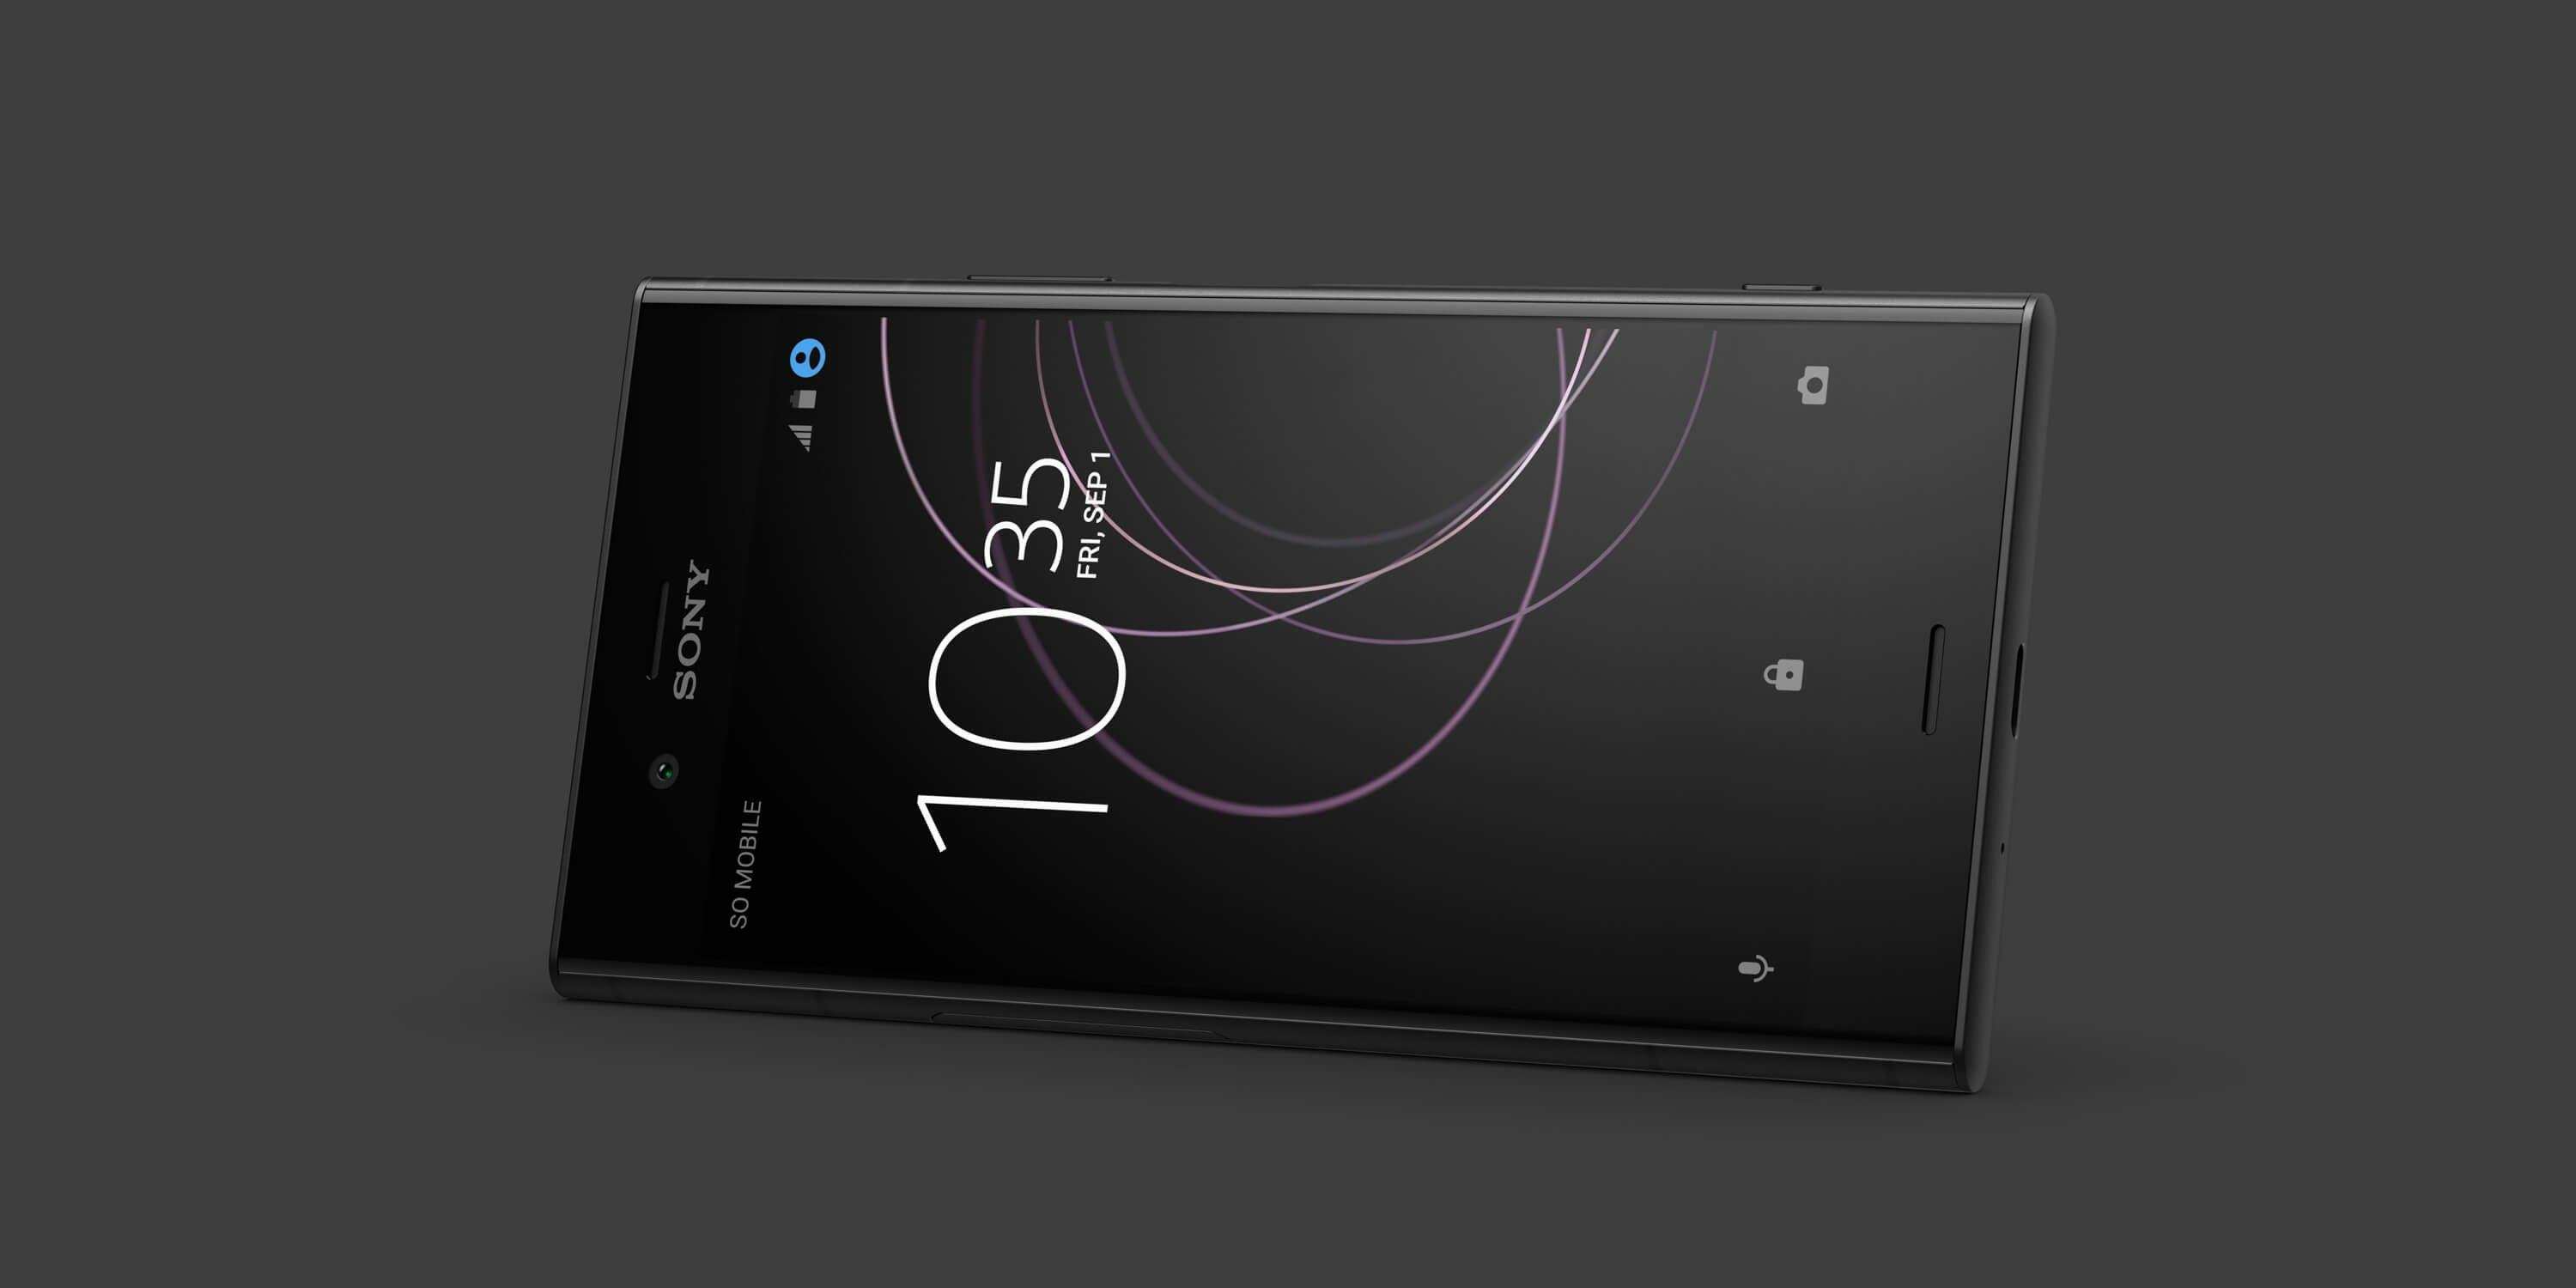 IFA 2017: Sony Xperia XZ1 und XZ1 Compact mit 3D Scan-Funktion 2